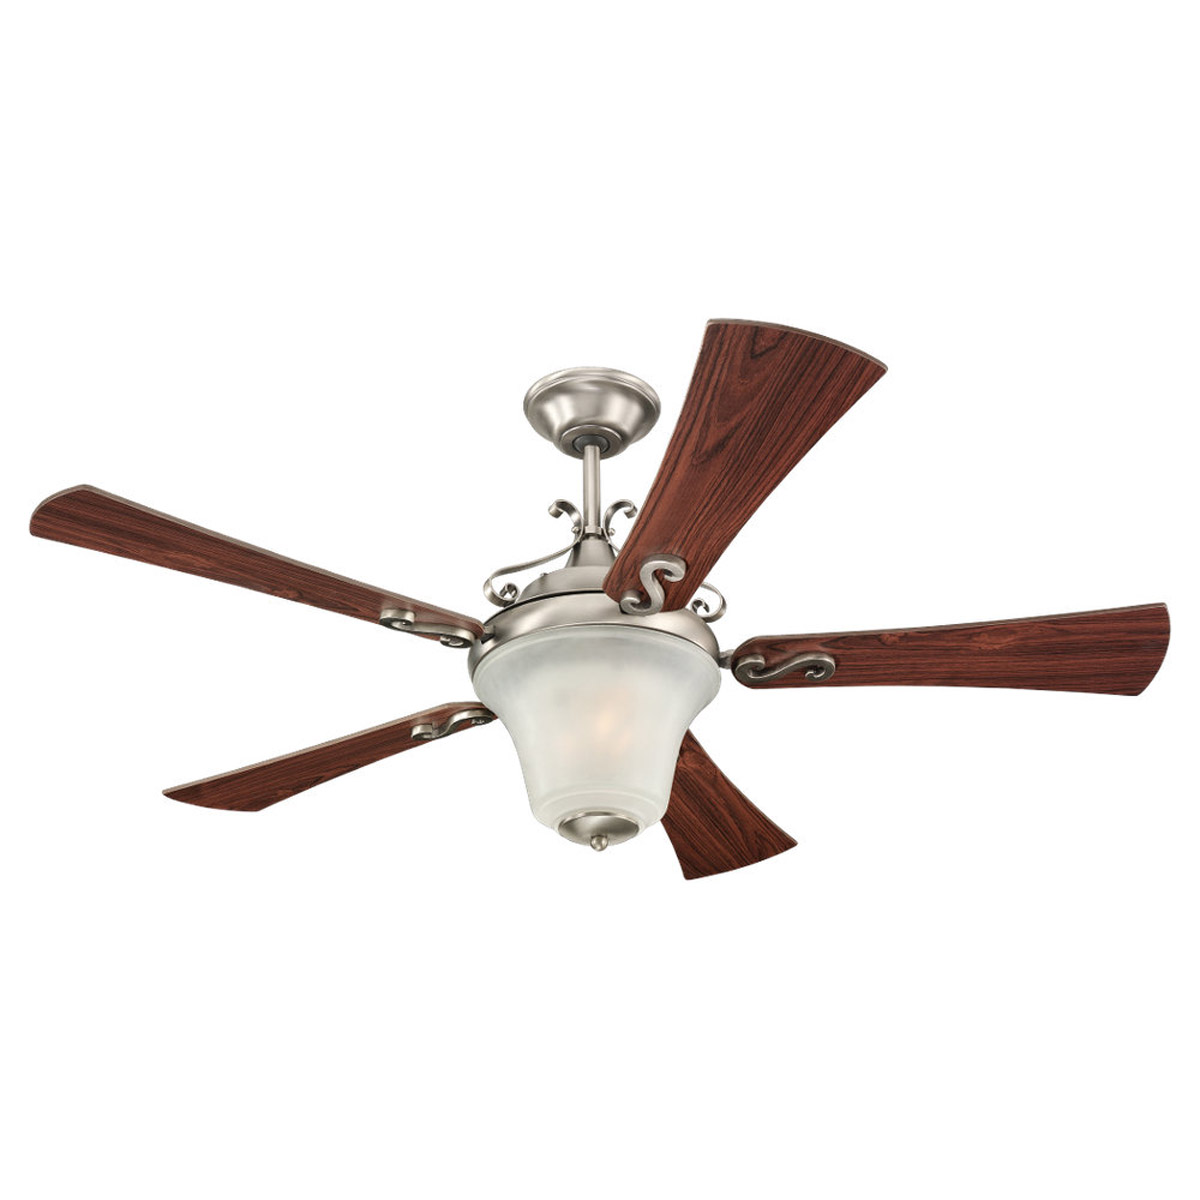 Sea Gull Lighting 3 Light 52in Parkview Ceiling Fan in Antique Brushed Nickel 15082B-965 photo